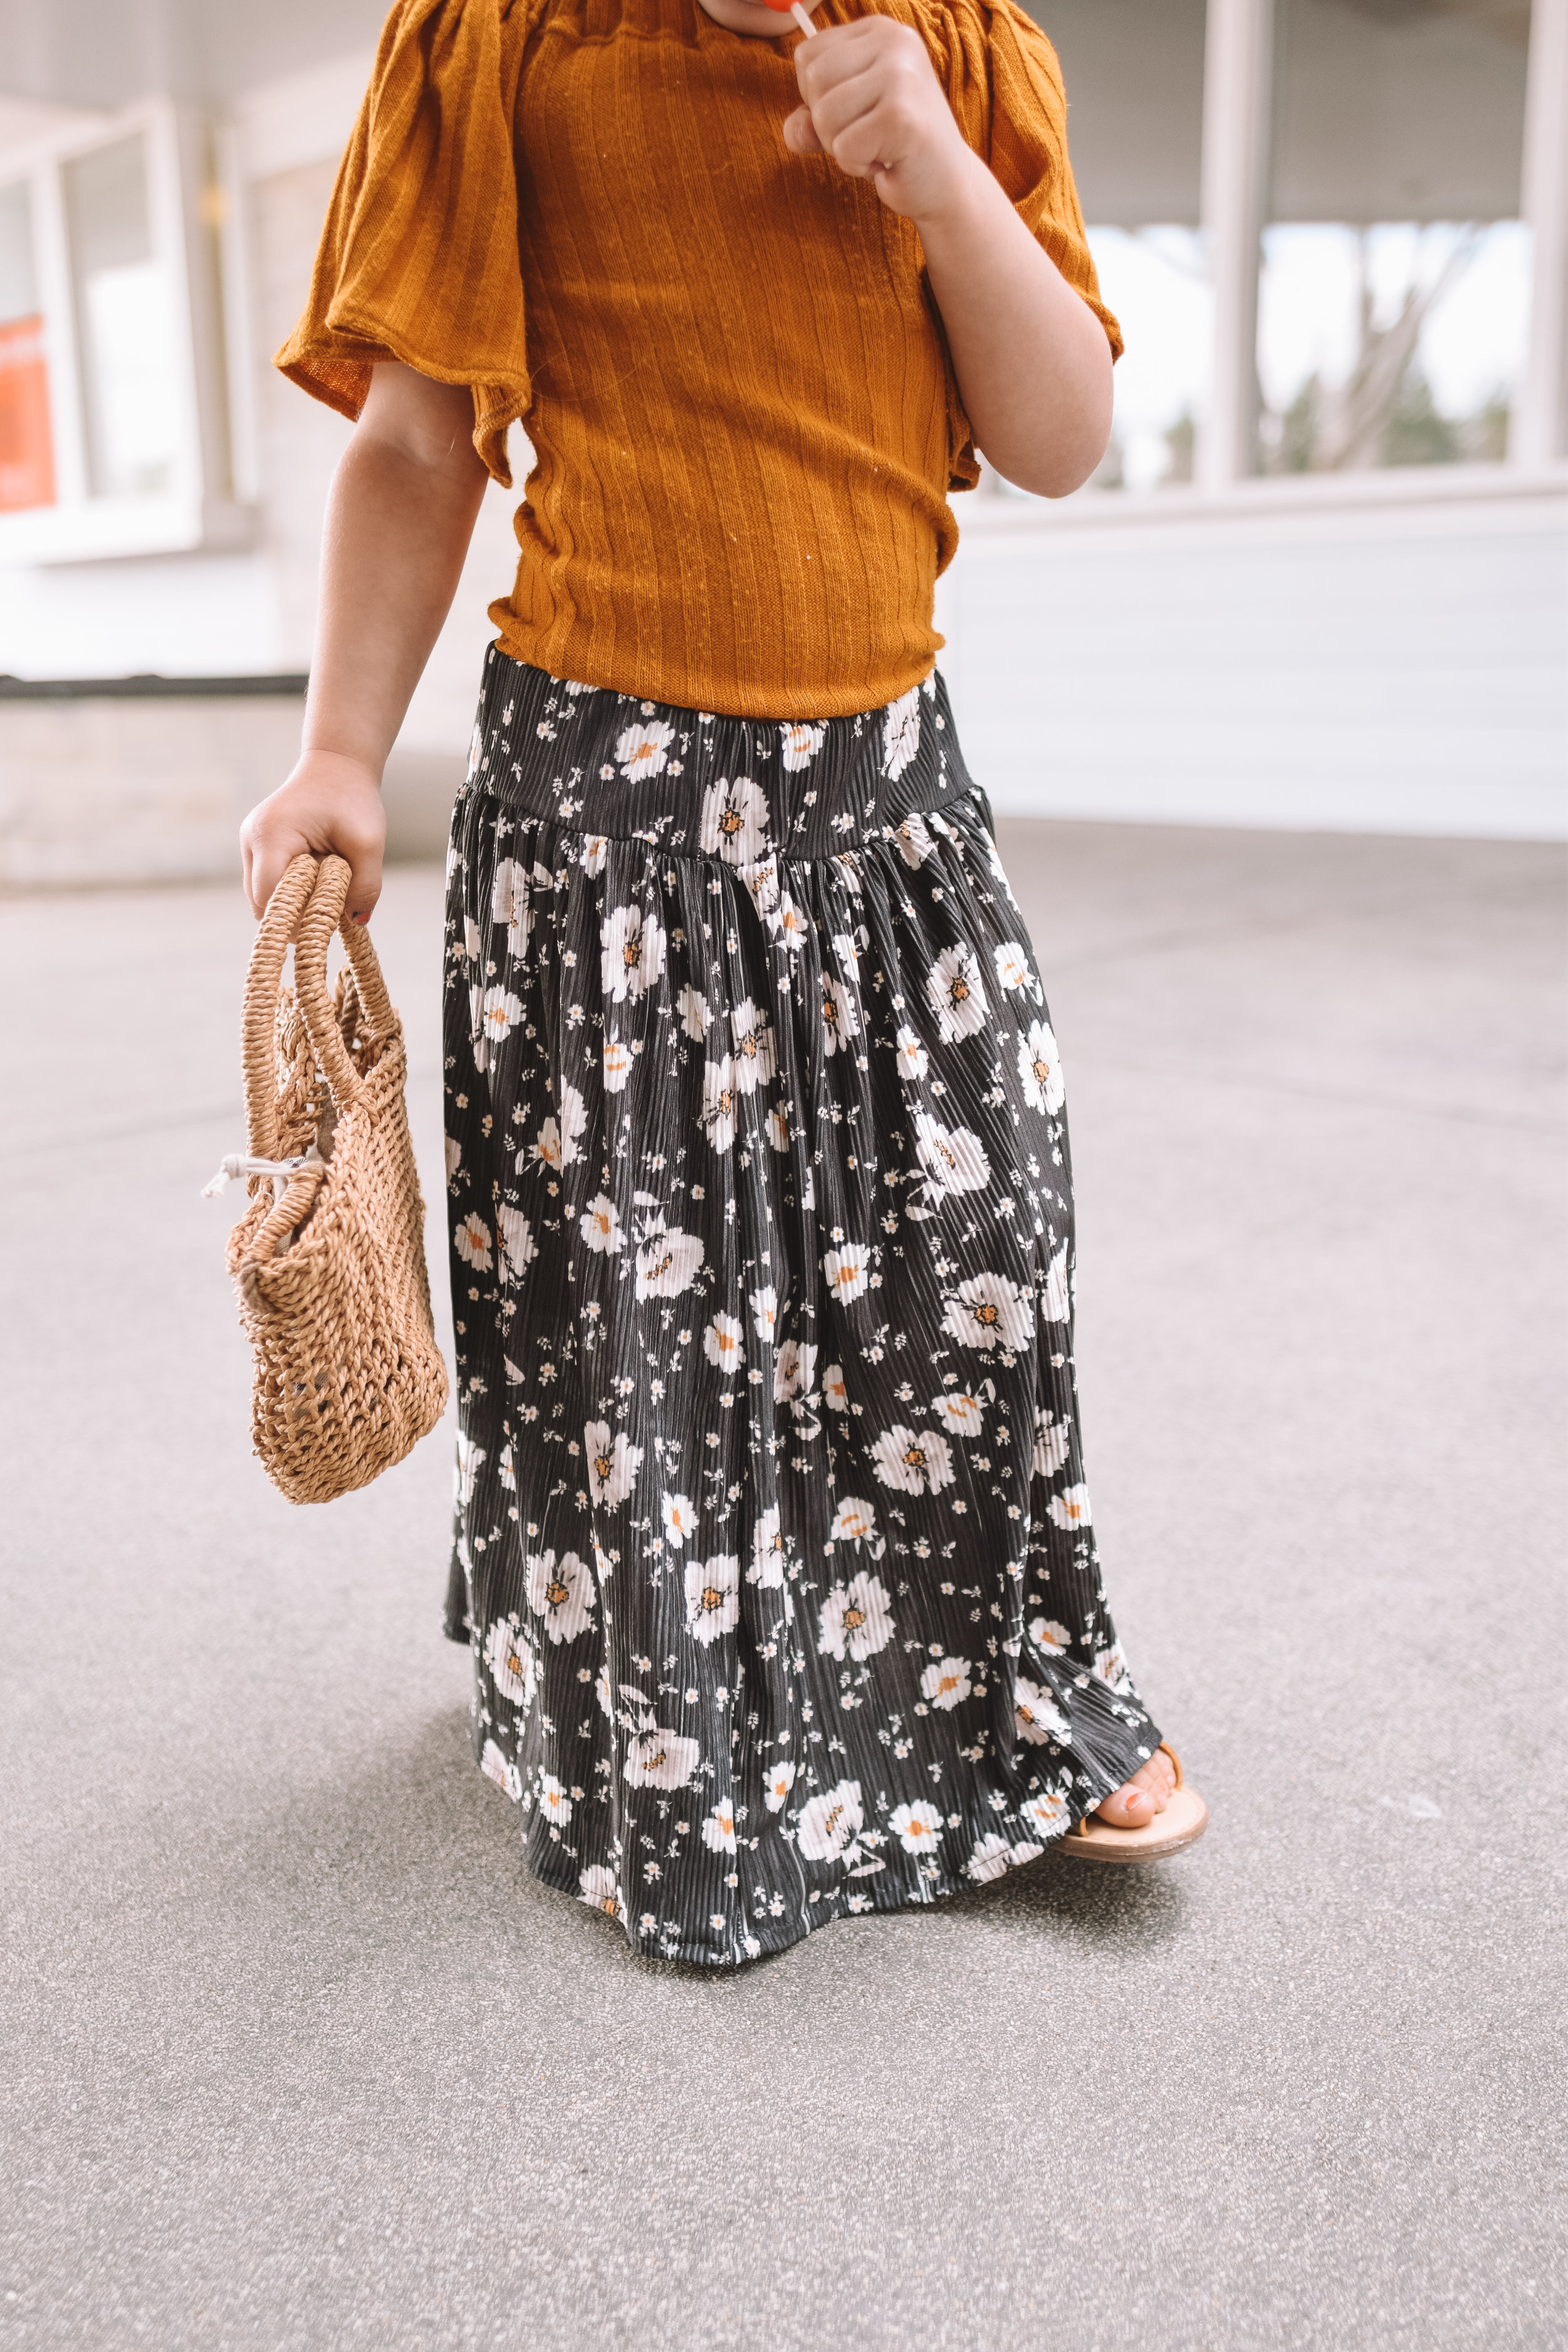 Mommy and Me Floral Maxi Skirts - The Overwhelmed Mommy Blogger